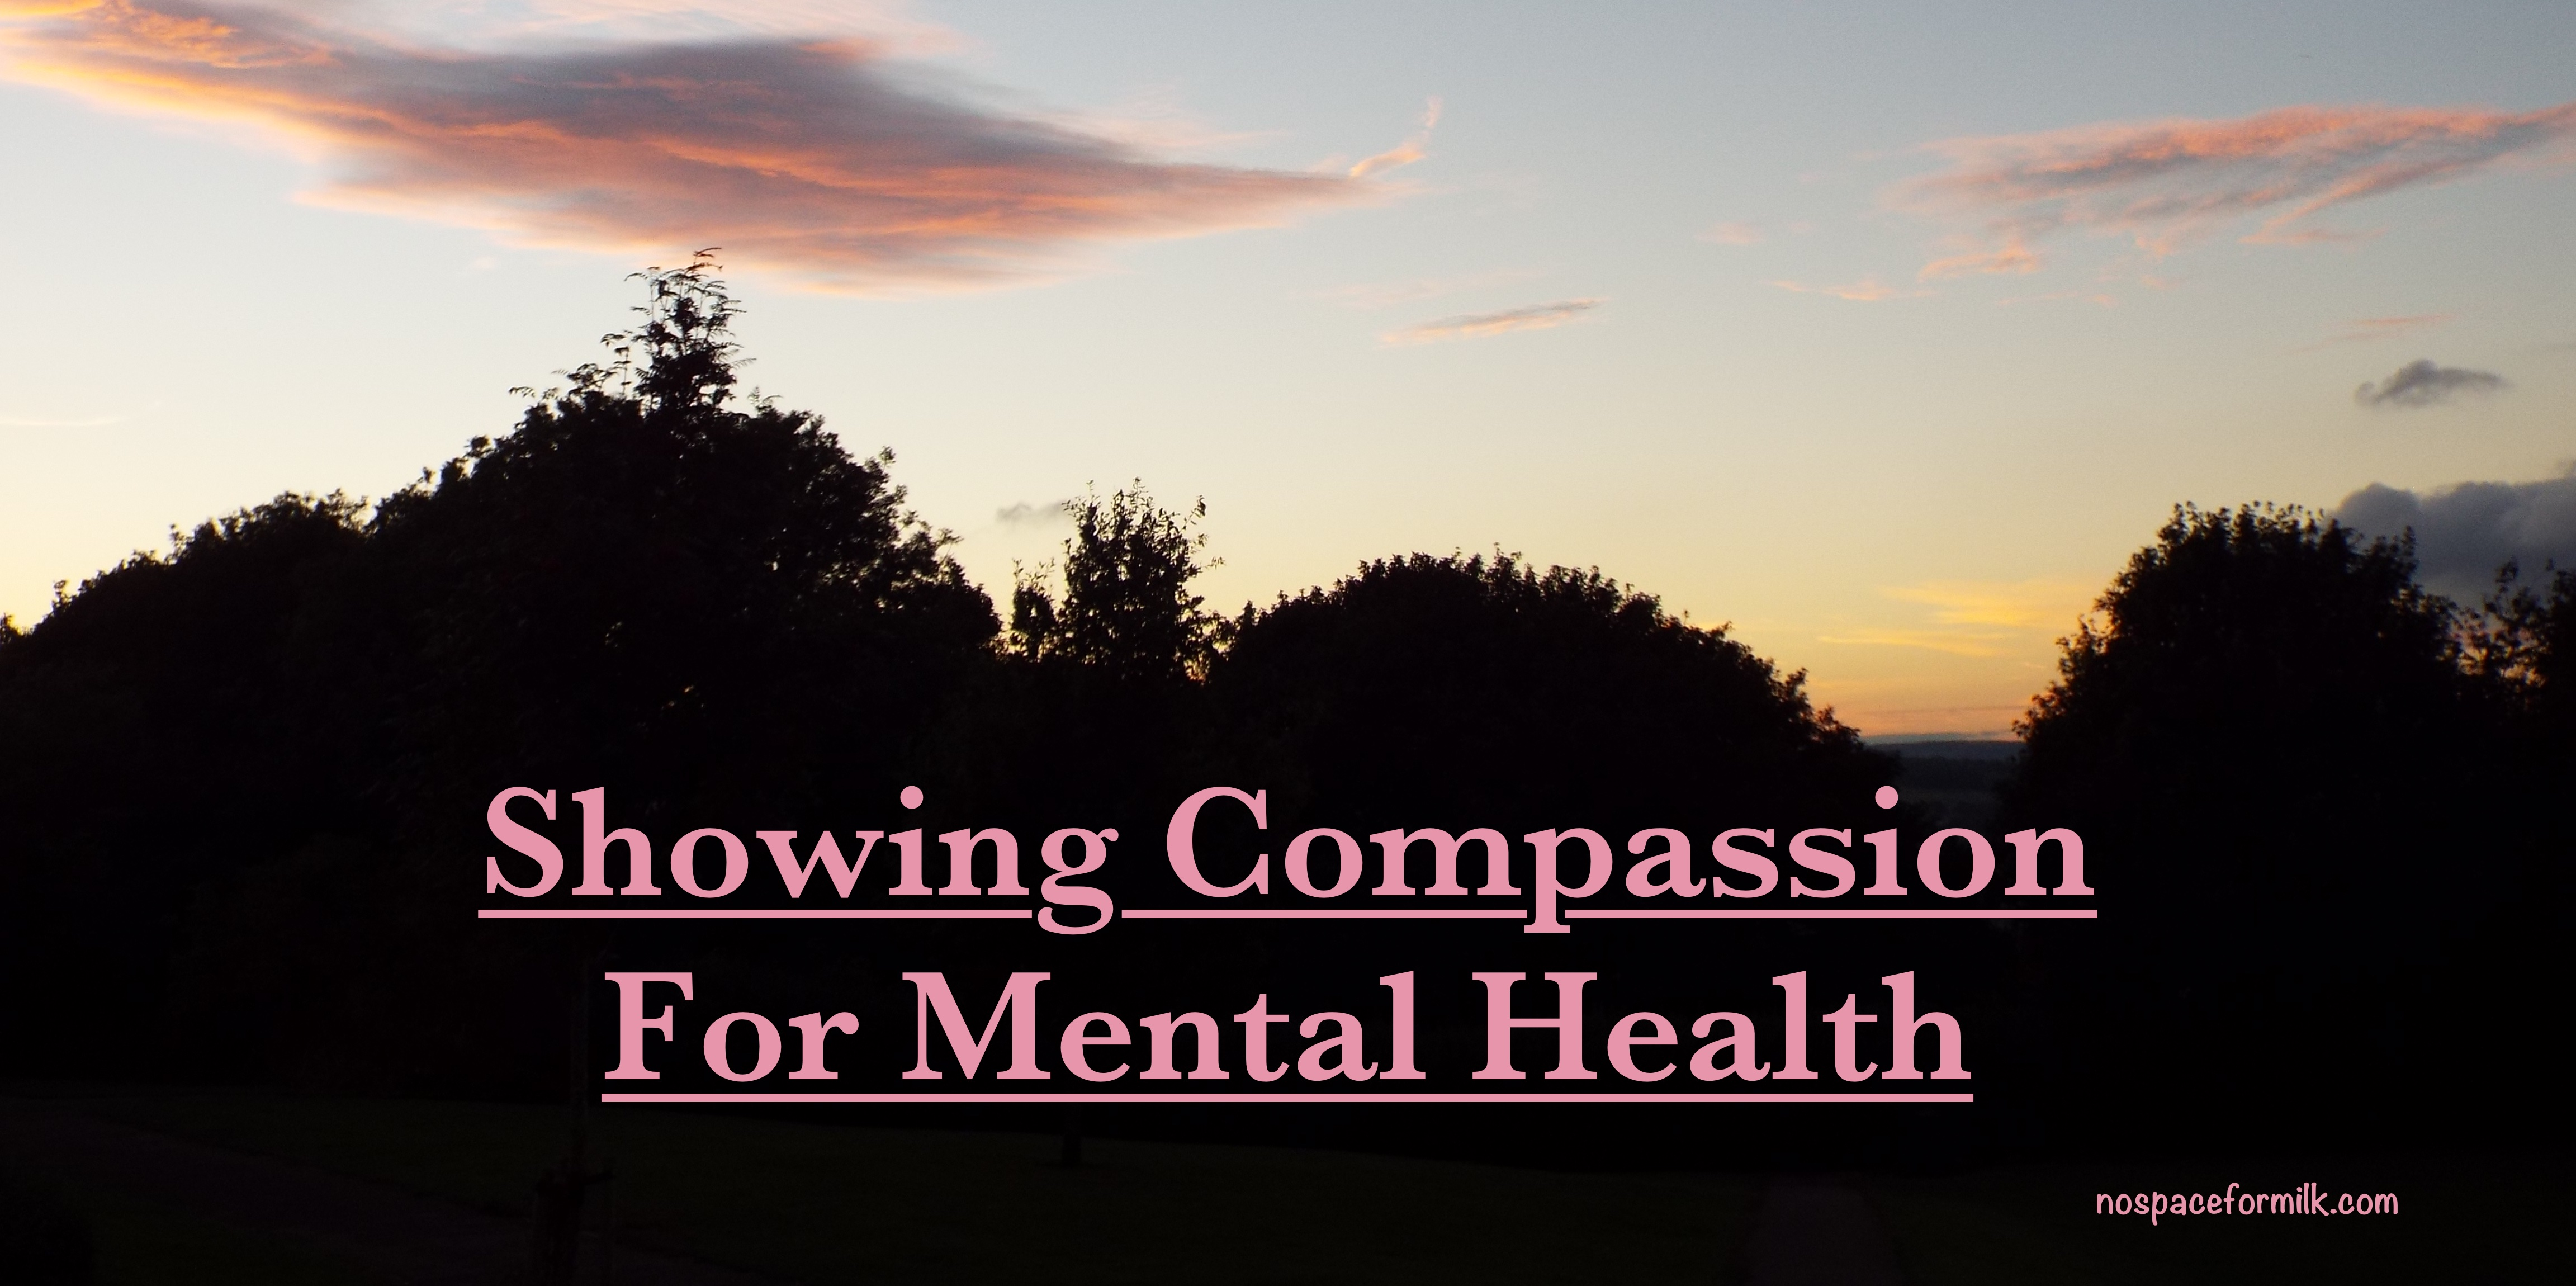 Showing Compassion For Mental Health